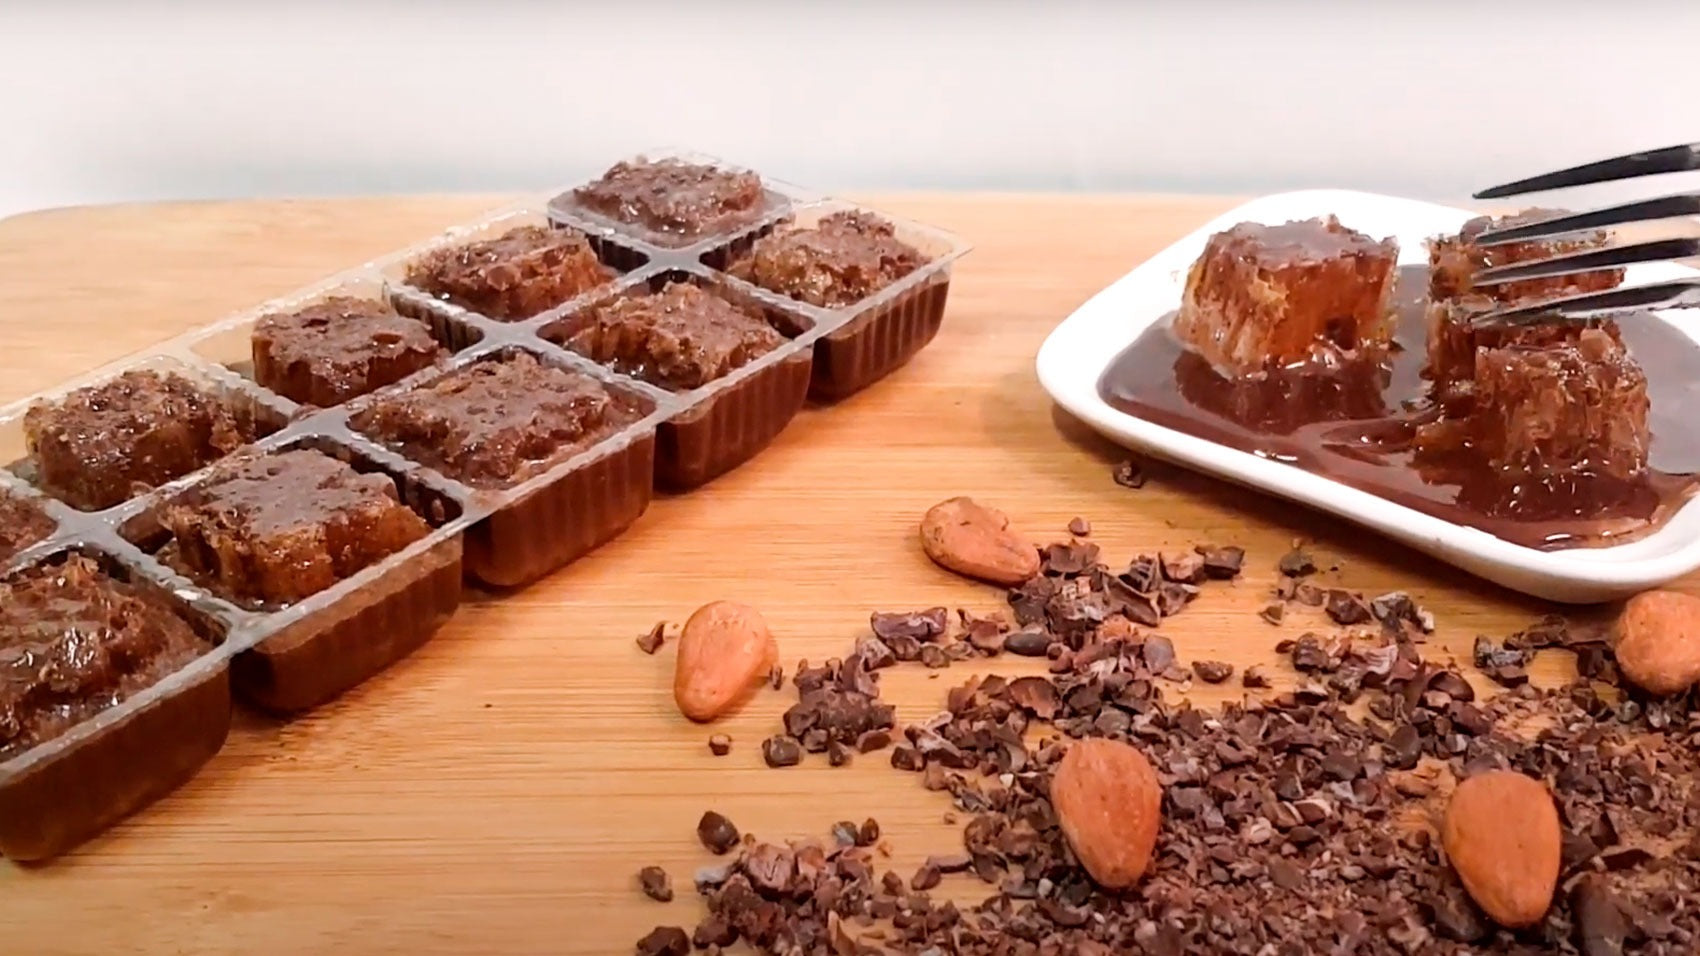 Video of the Chocolate Covered 100% RAW Honeycomb Snack Size, 10 Servings, open on a wooden board, with cacao beans and chocolate chips, and a dish with chocolate honeycomb cubes being cut by a fork